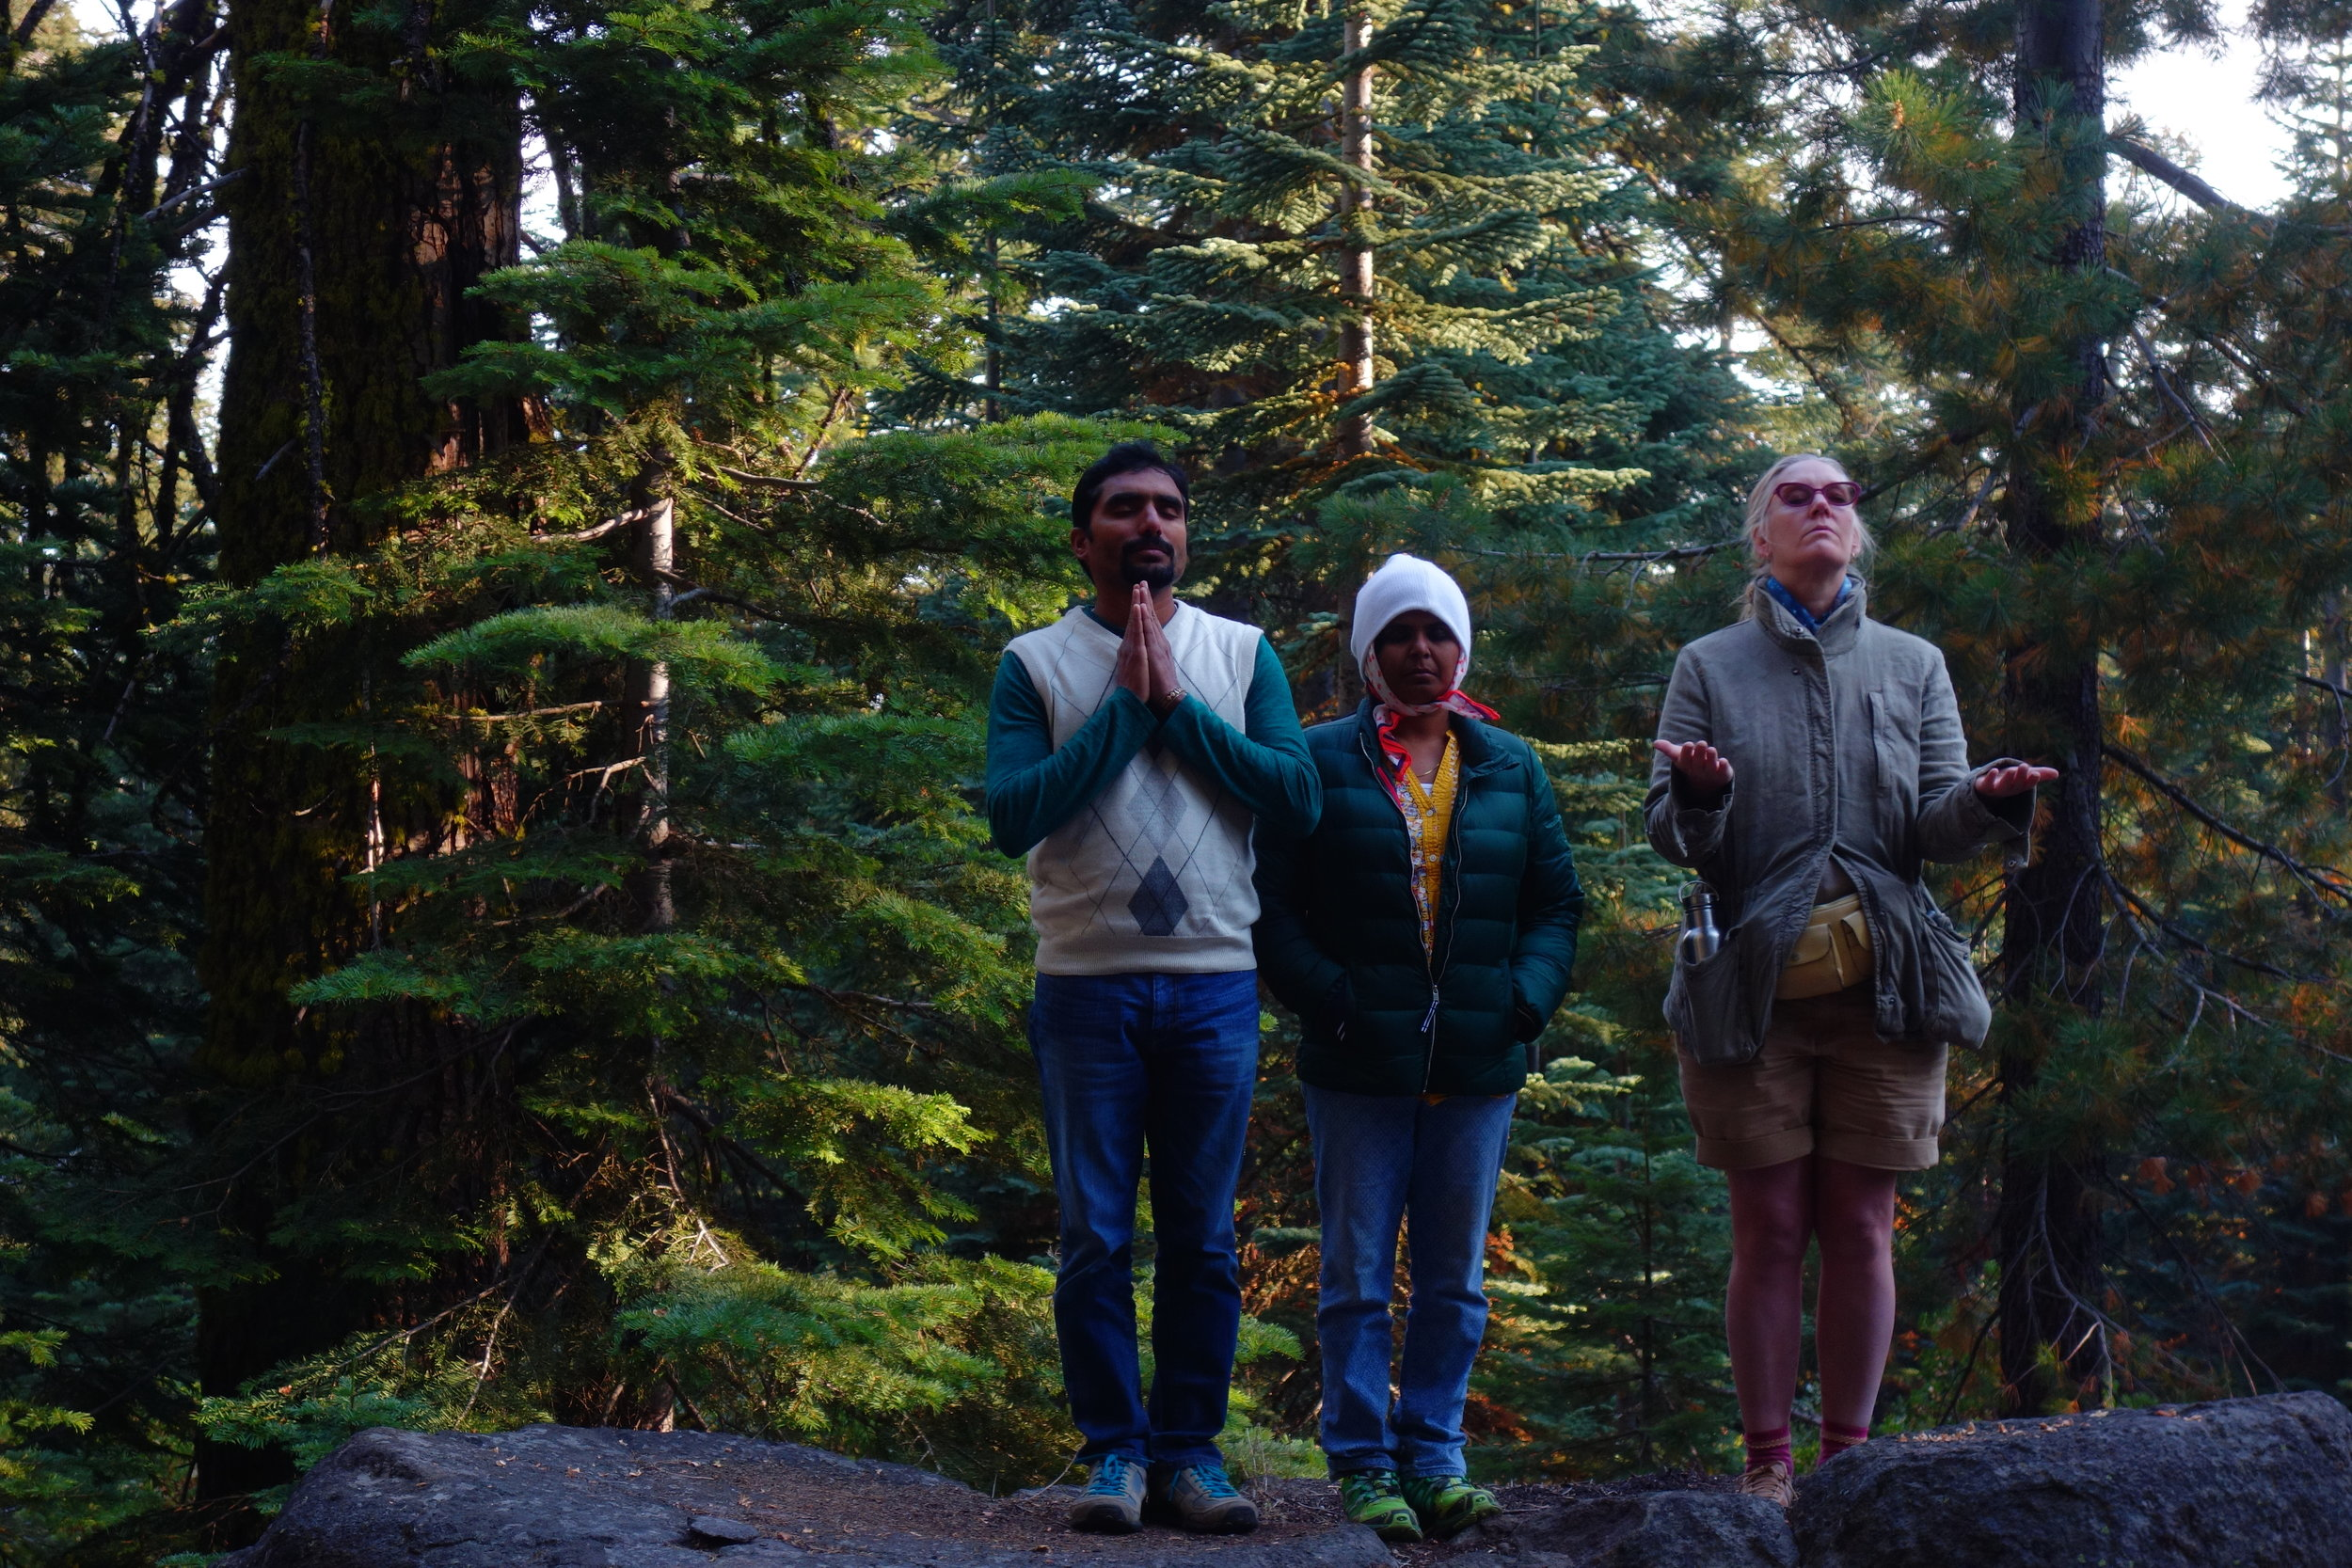 Mt. Shasta - Higher Self Connection